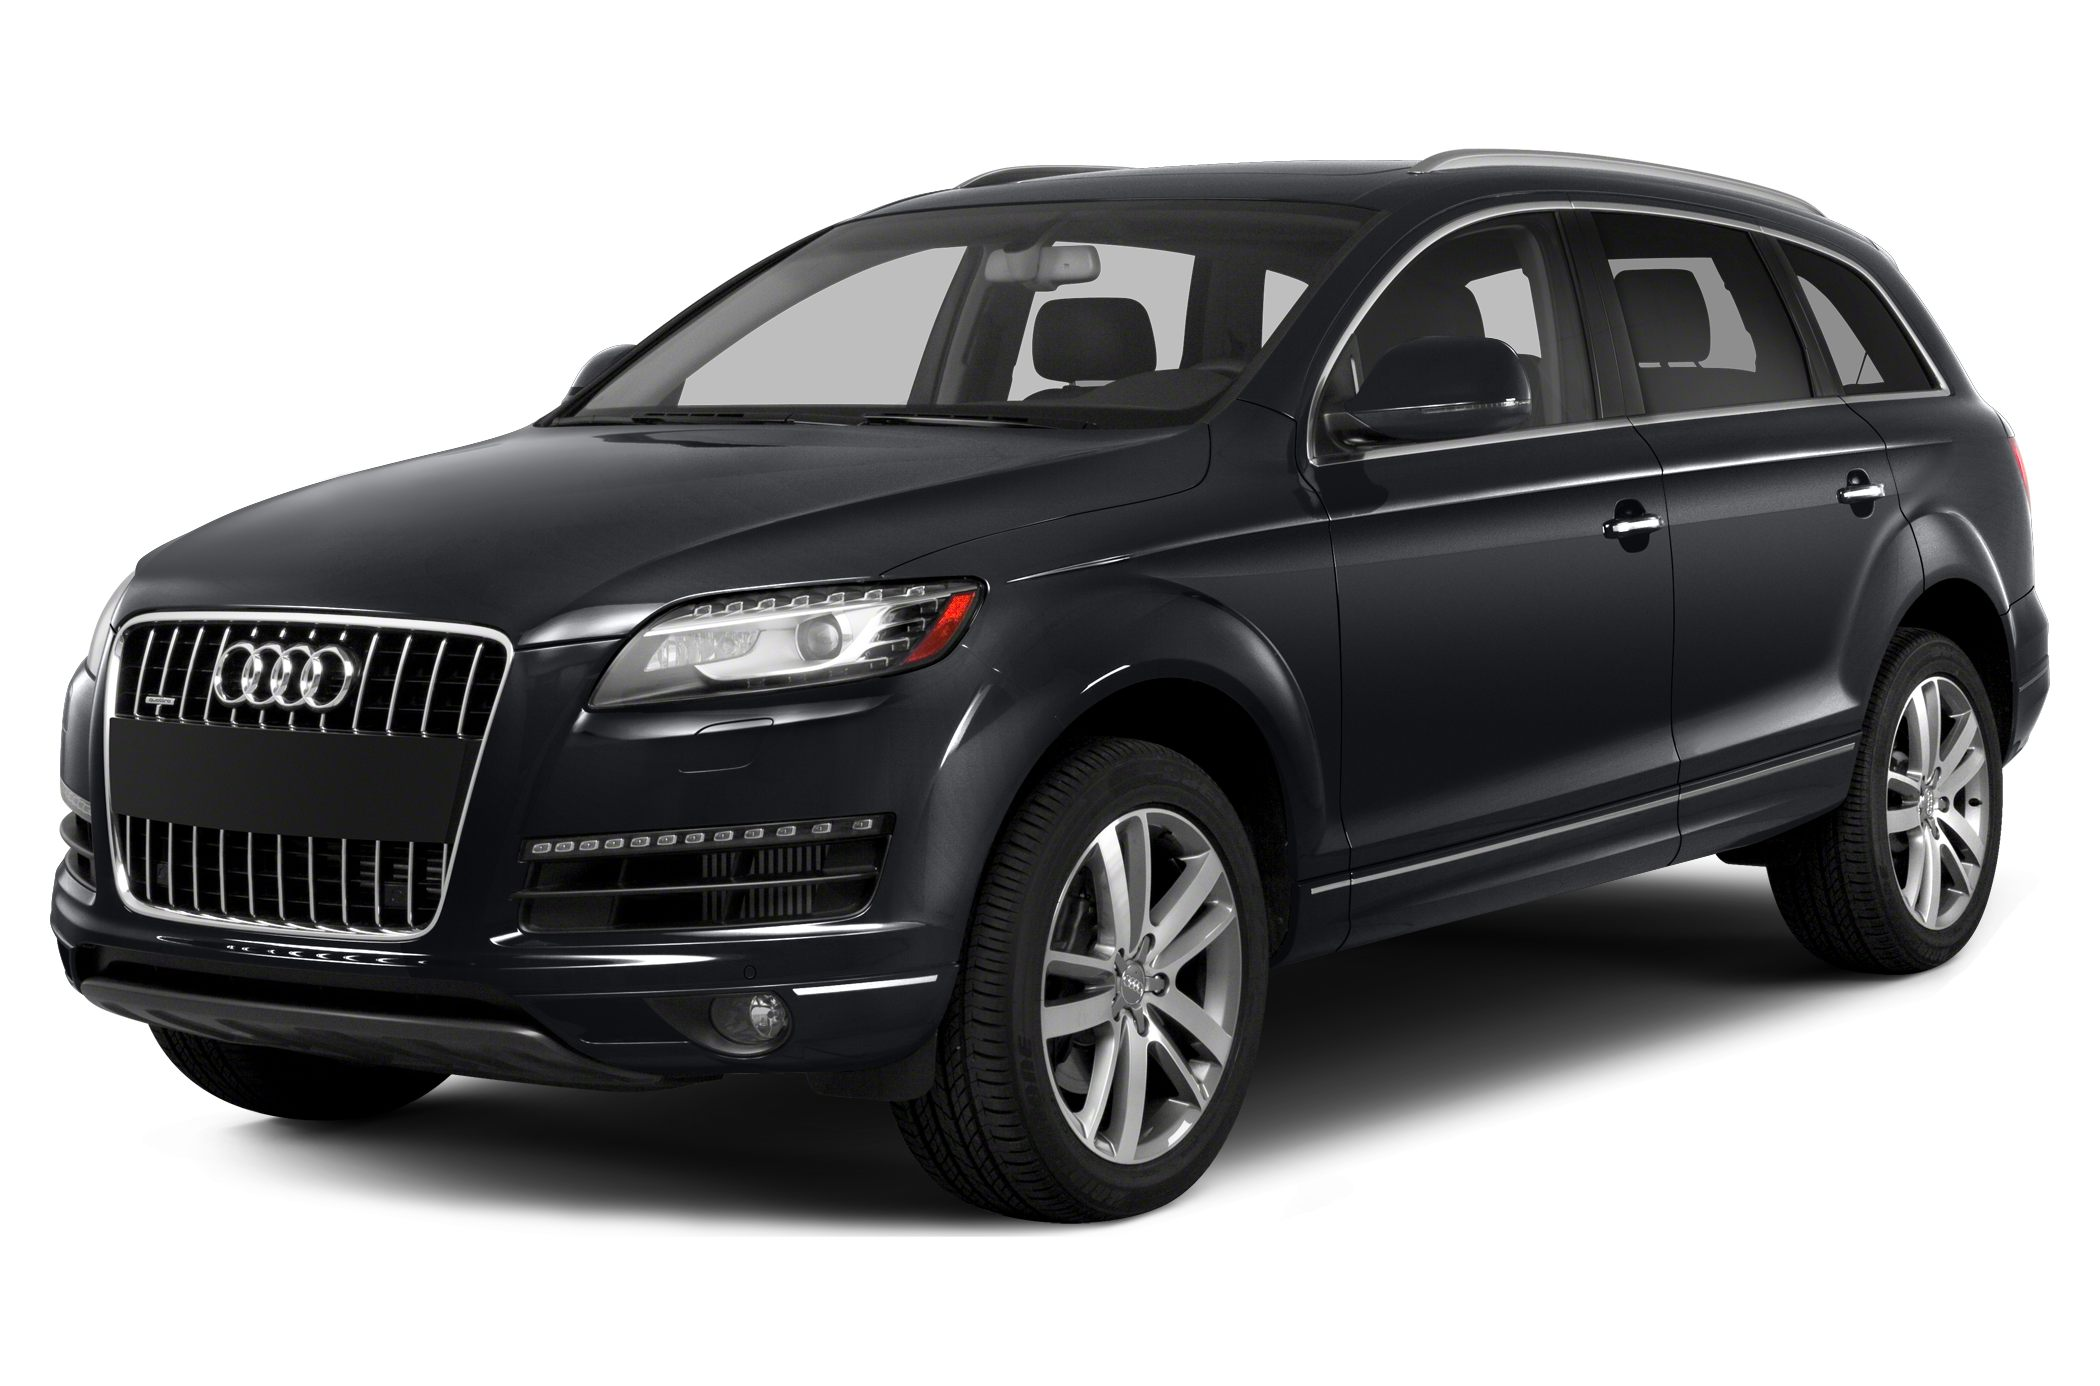 2014 Audi Q7   WHEN IT COMES TOEXCELLENCE IN USED CAR SALES YOU KNOW YOURE AT STAR AUTO MALL